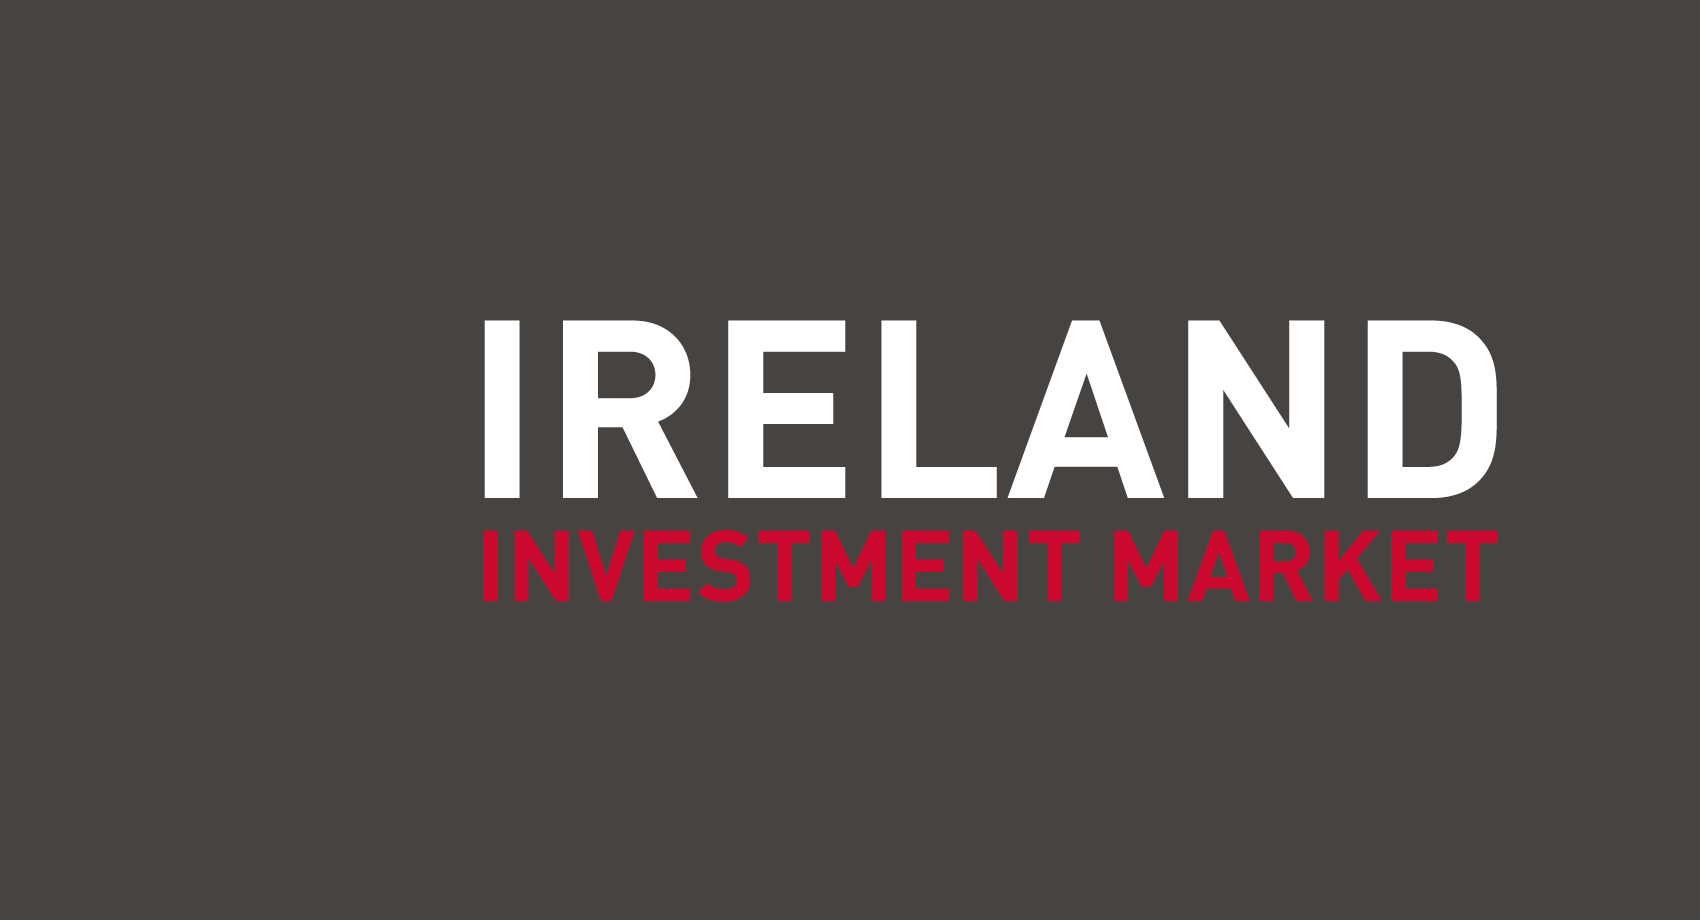 Ireland Investment Market